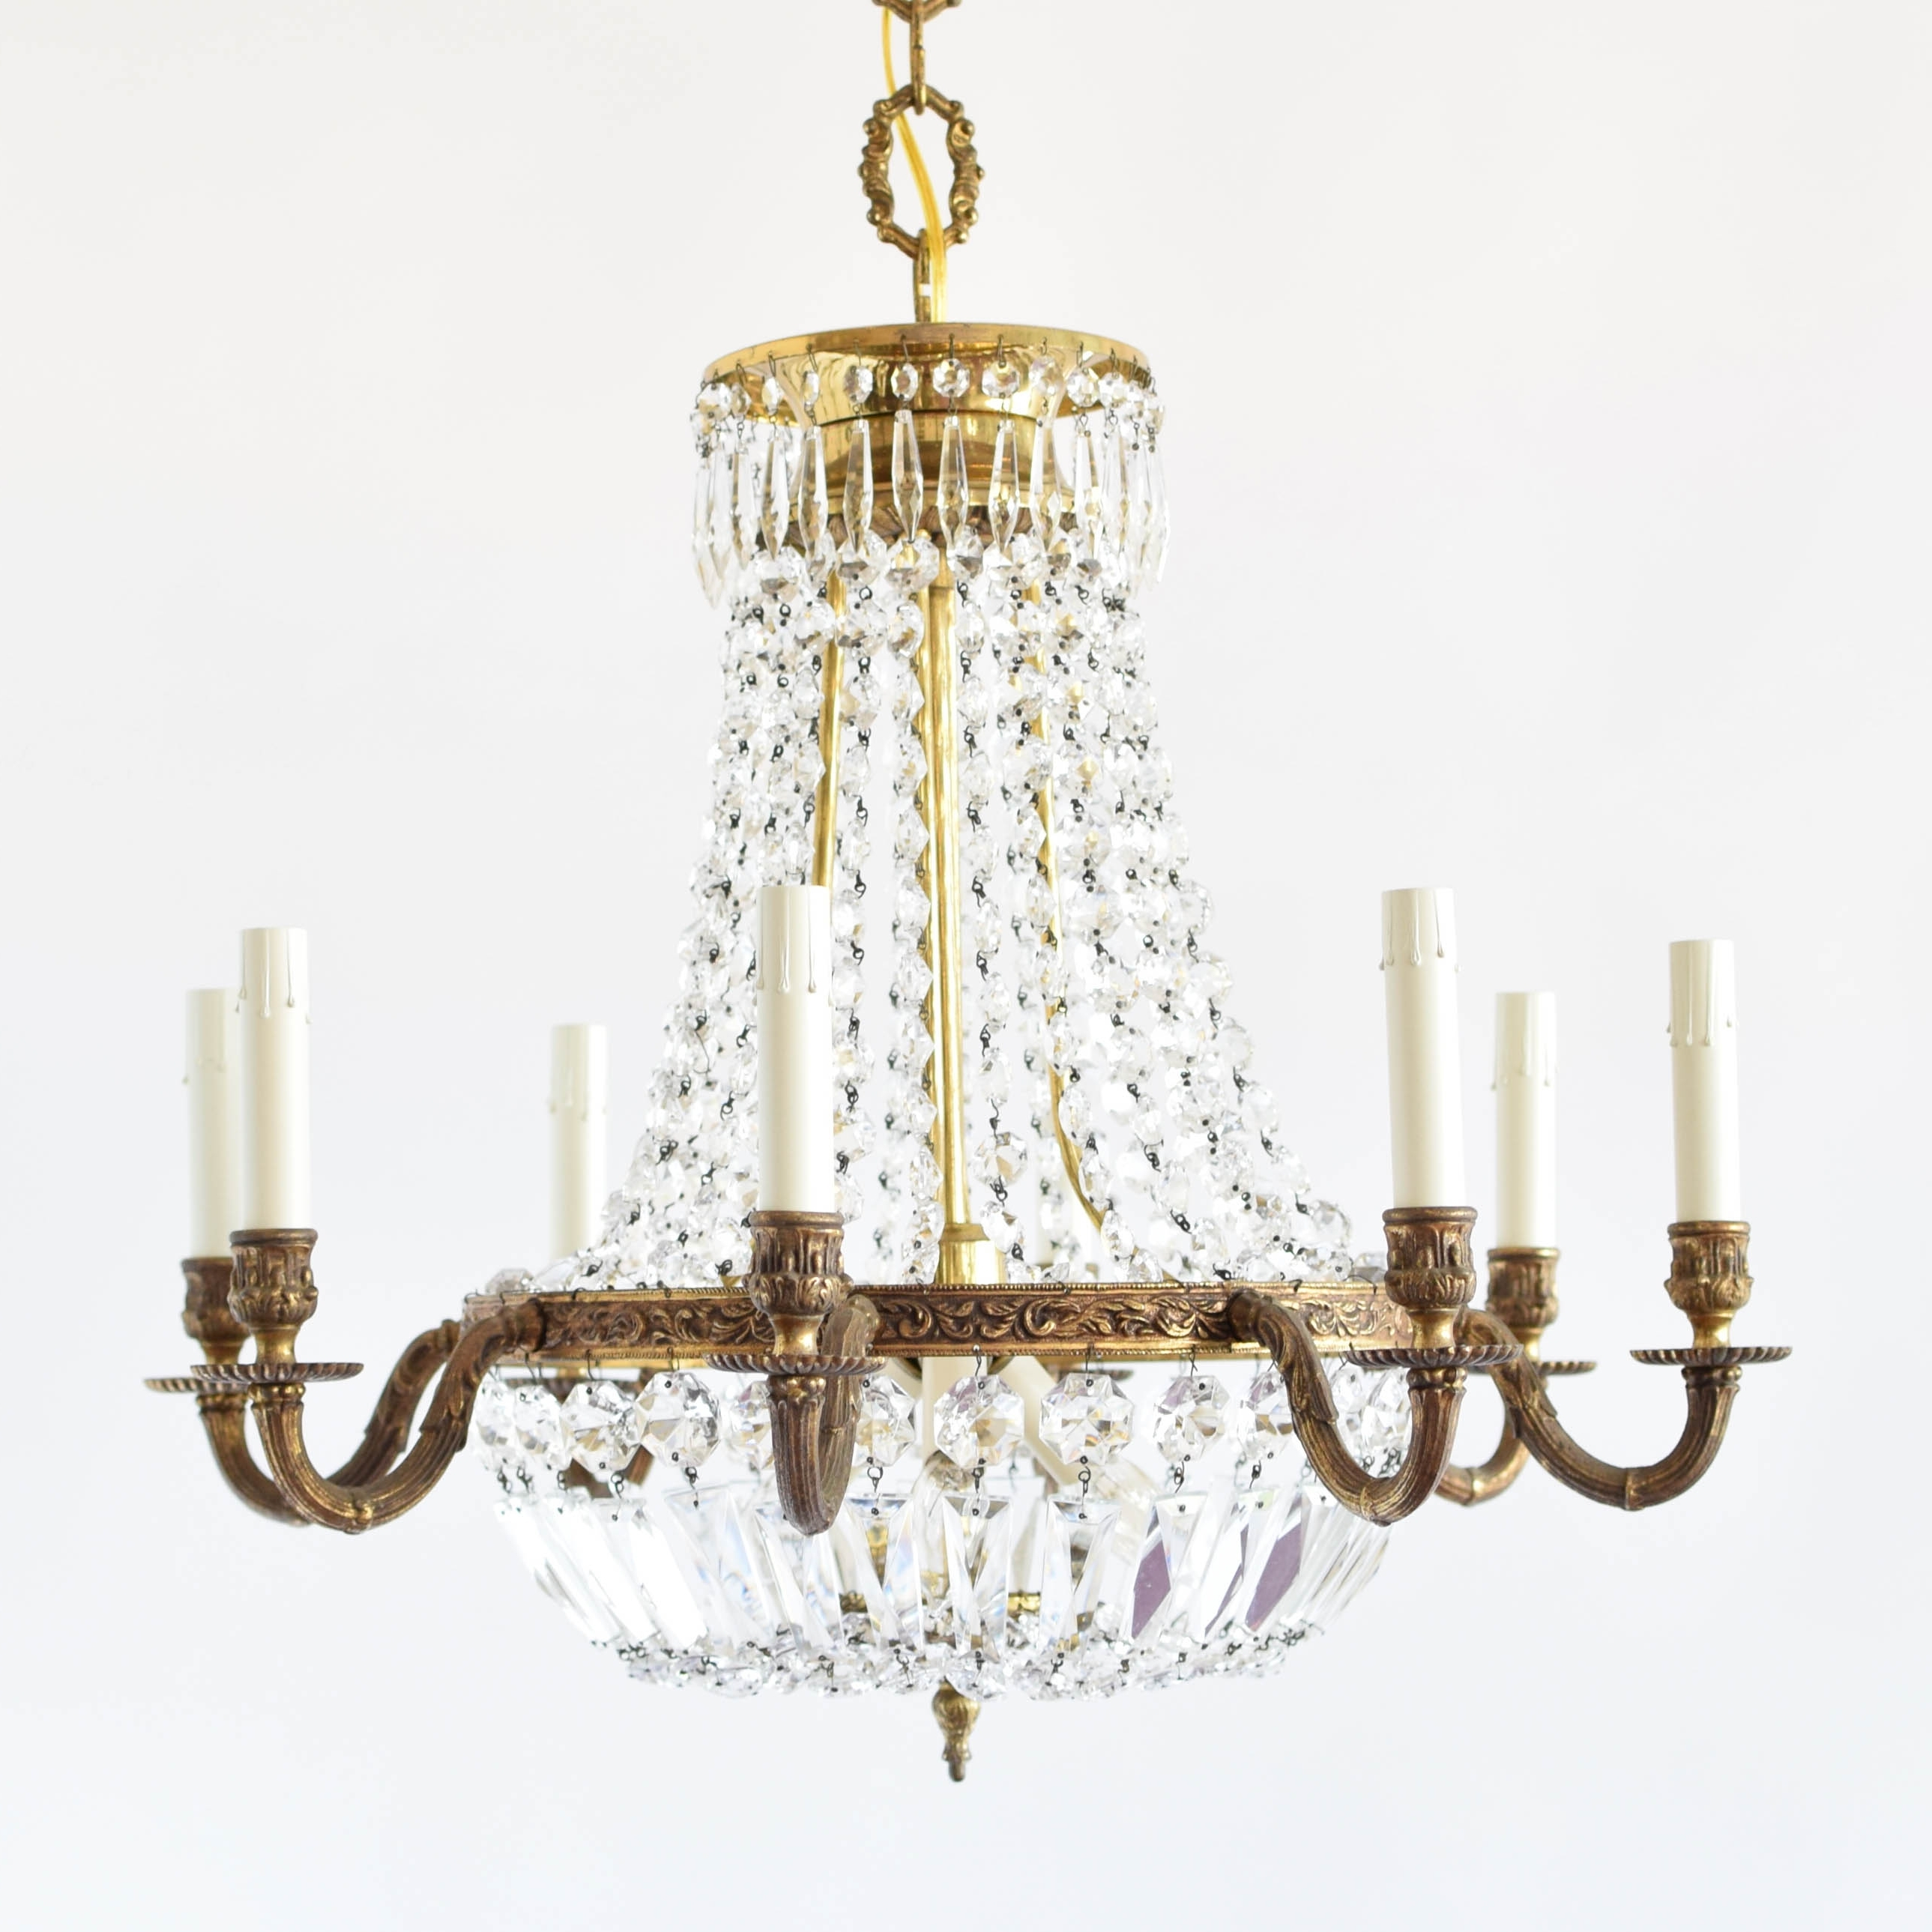 Fashionable Vintage Style Chandelier Intended For Empire Style Crystal Chandelier – The Big Chandelier (View 4 of 15)